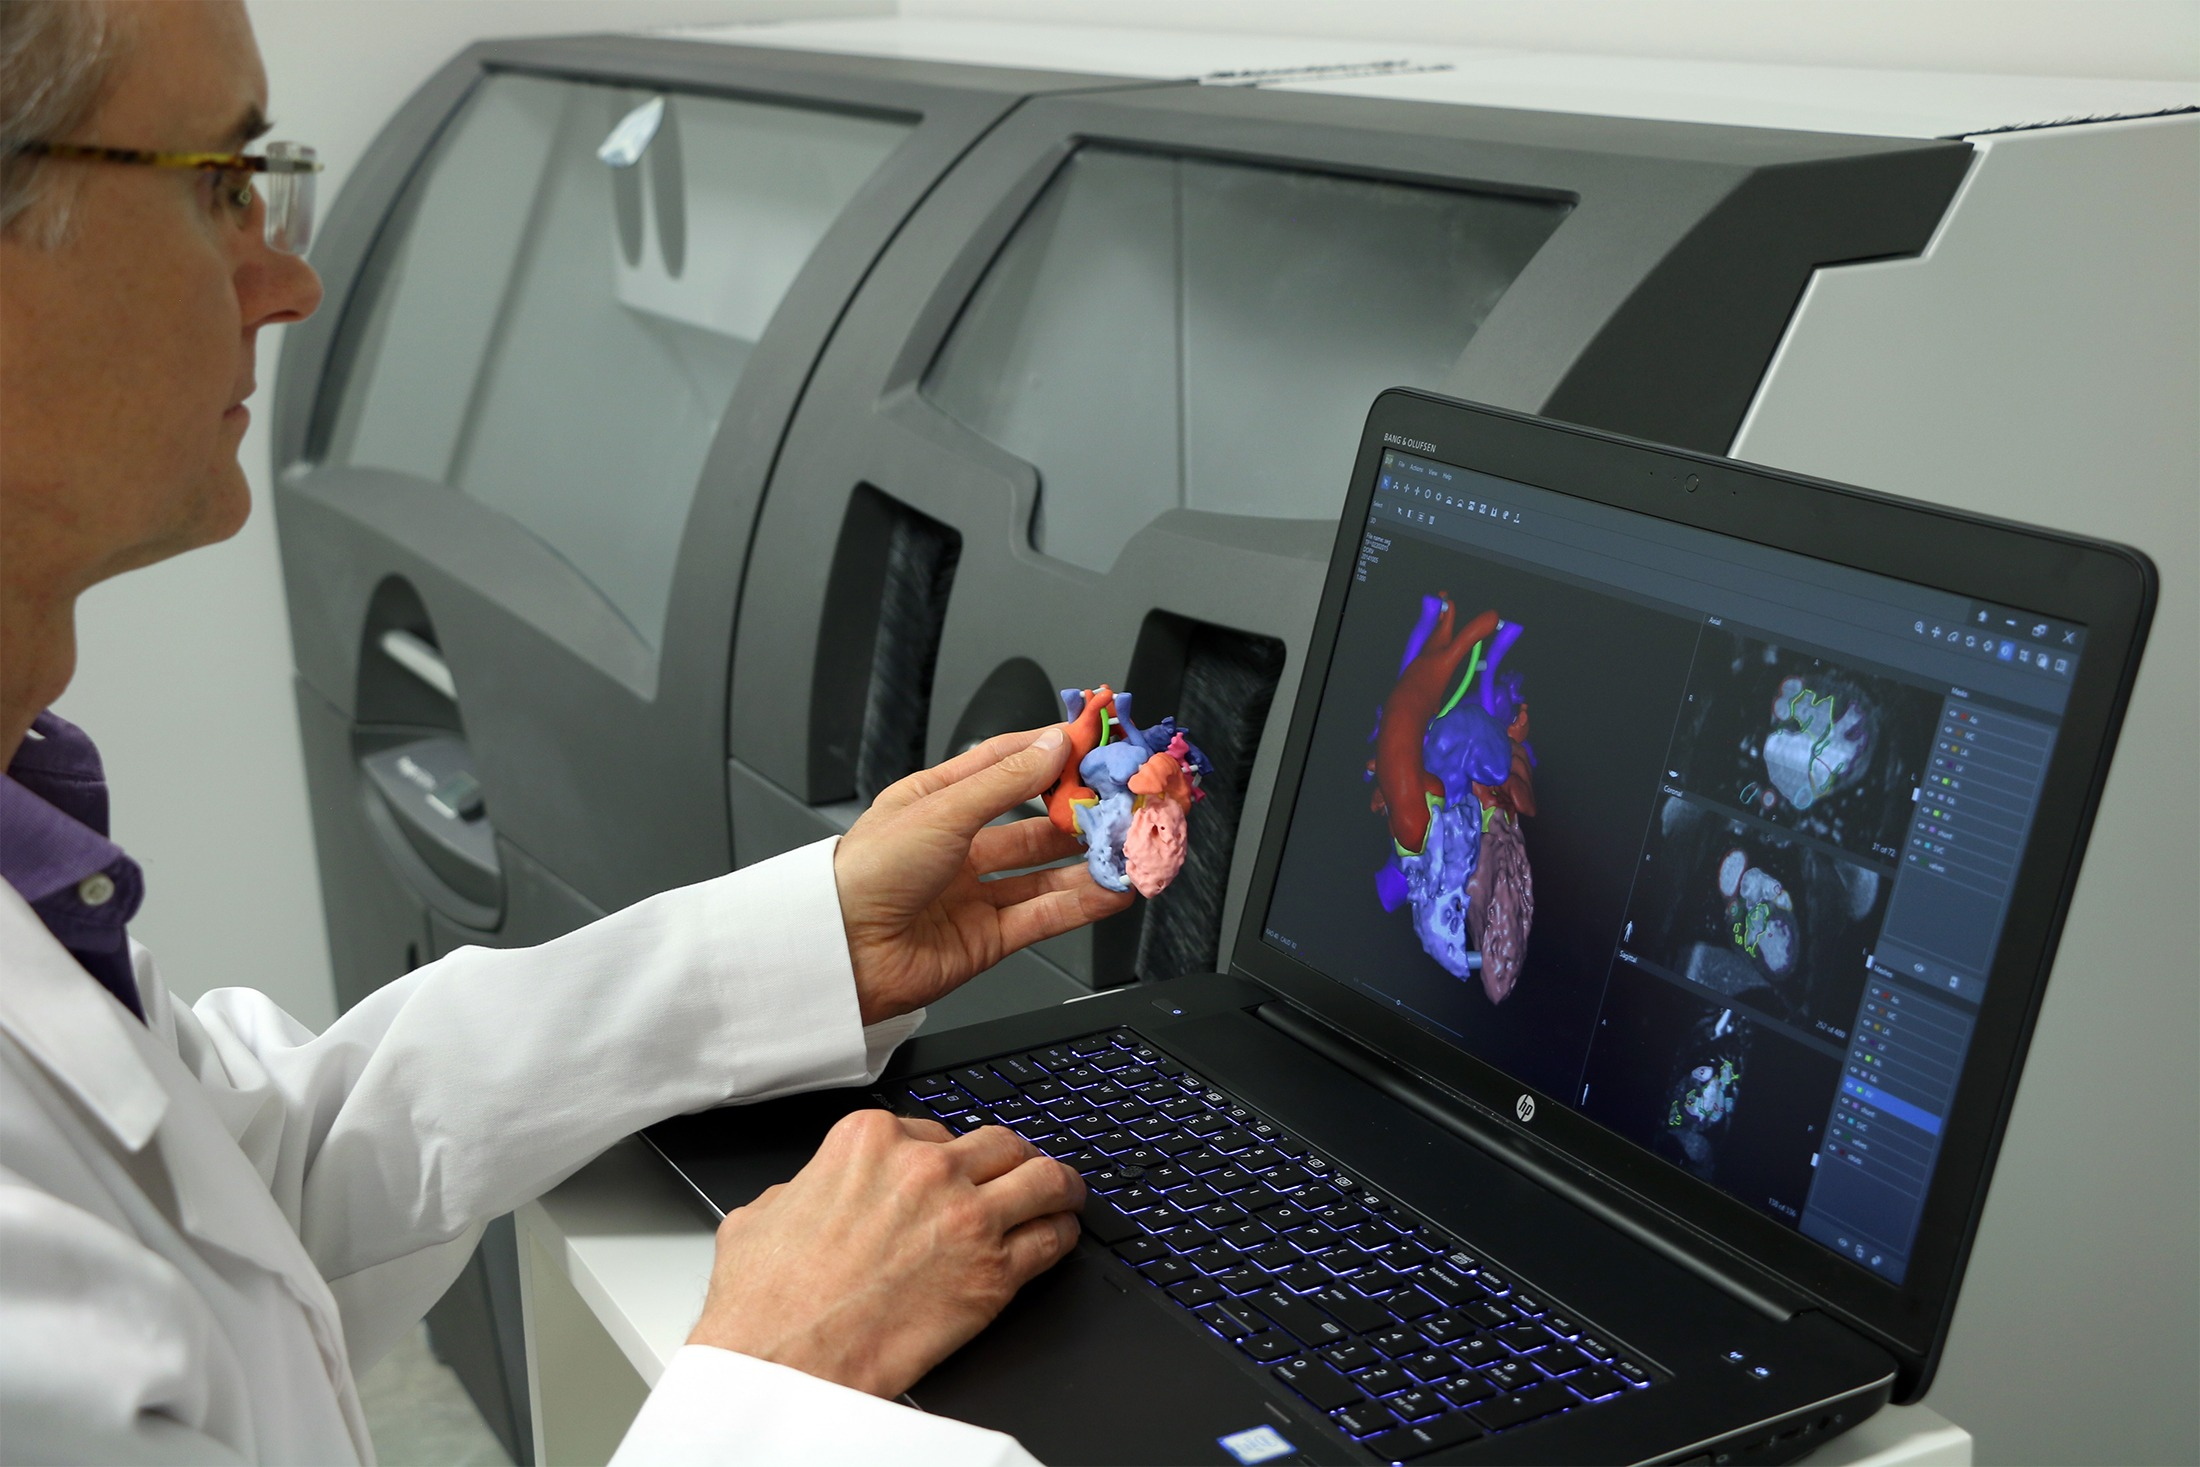 The advantages of using 3D printing to make more personalised equipment can be felt by surgeons and patients alike (Credit: 3D Systems)